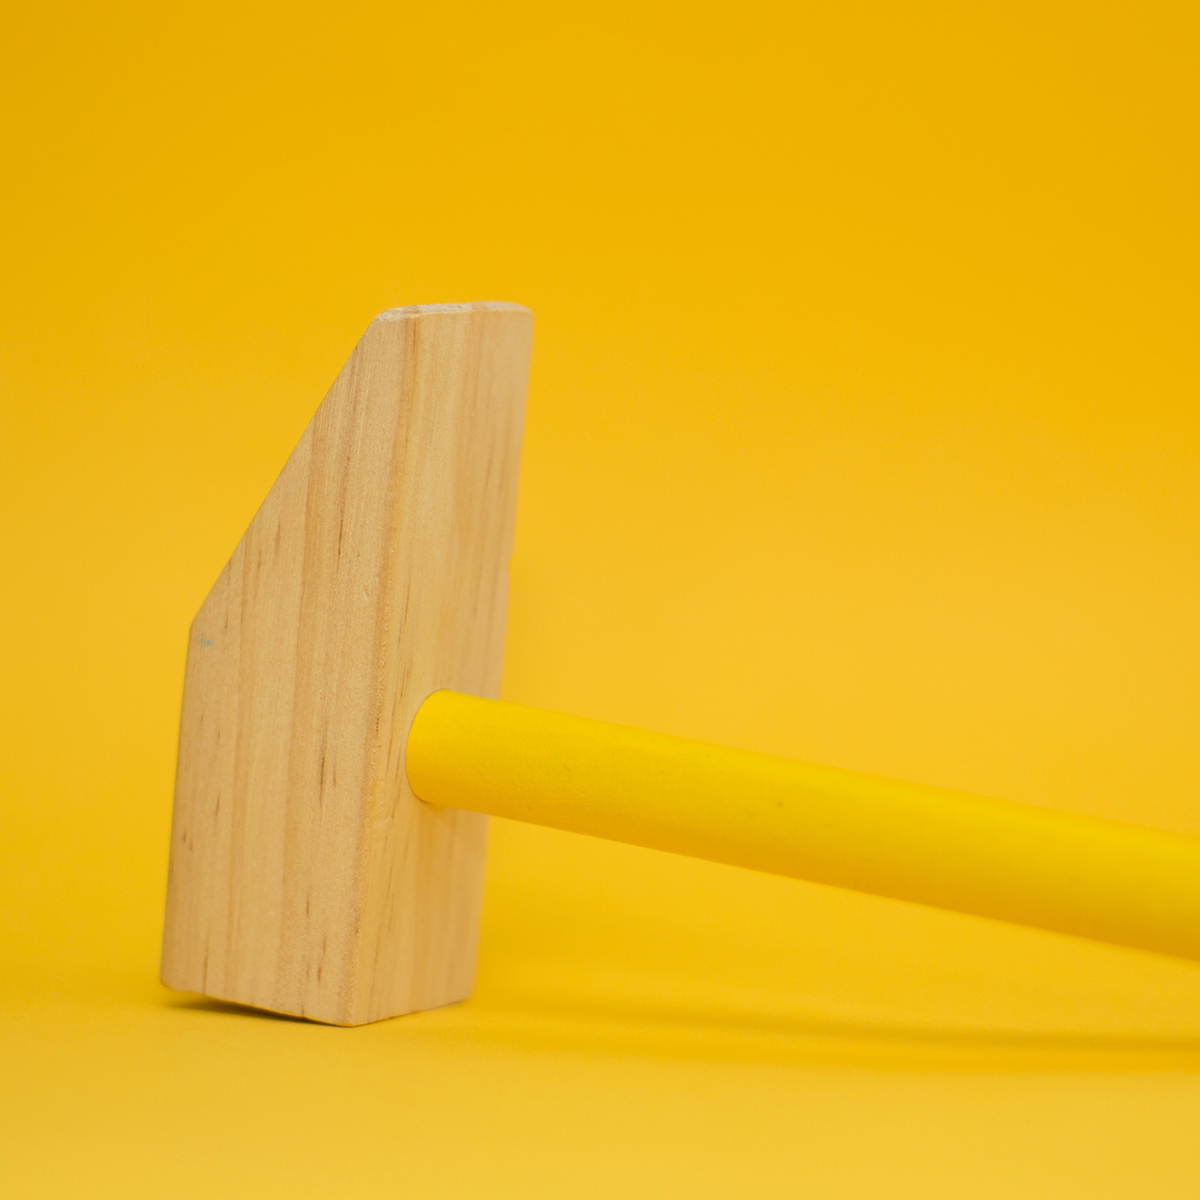 yellow hammer with yellow background